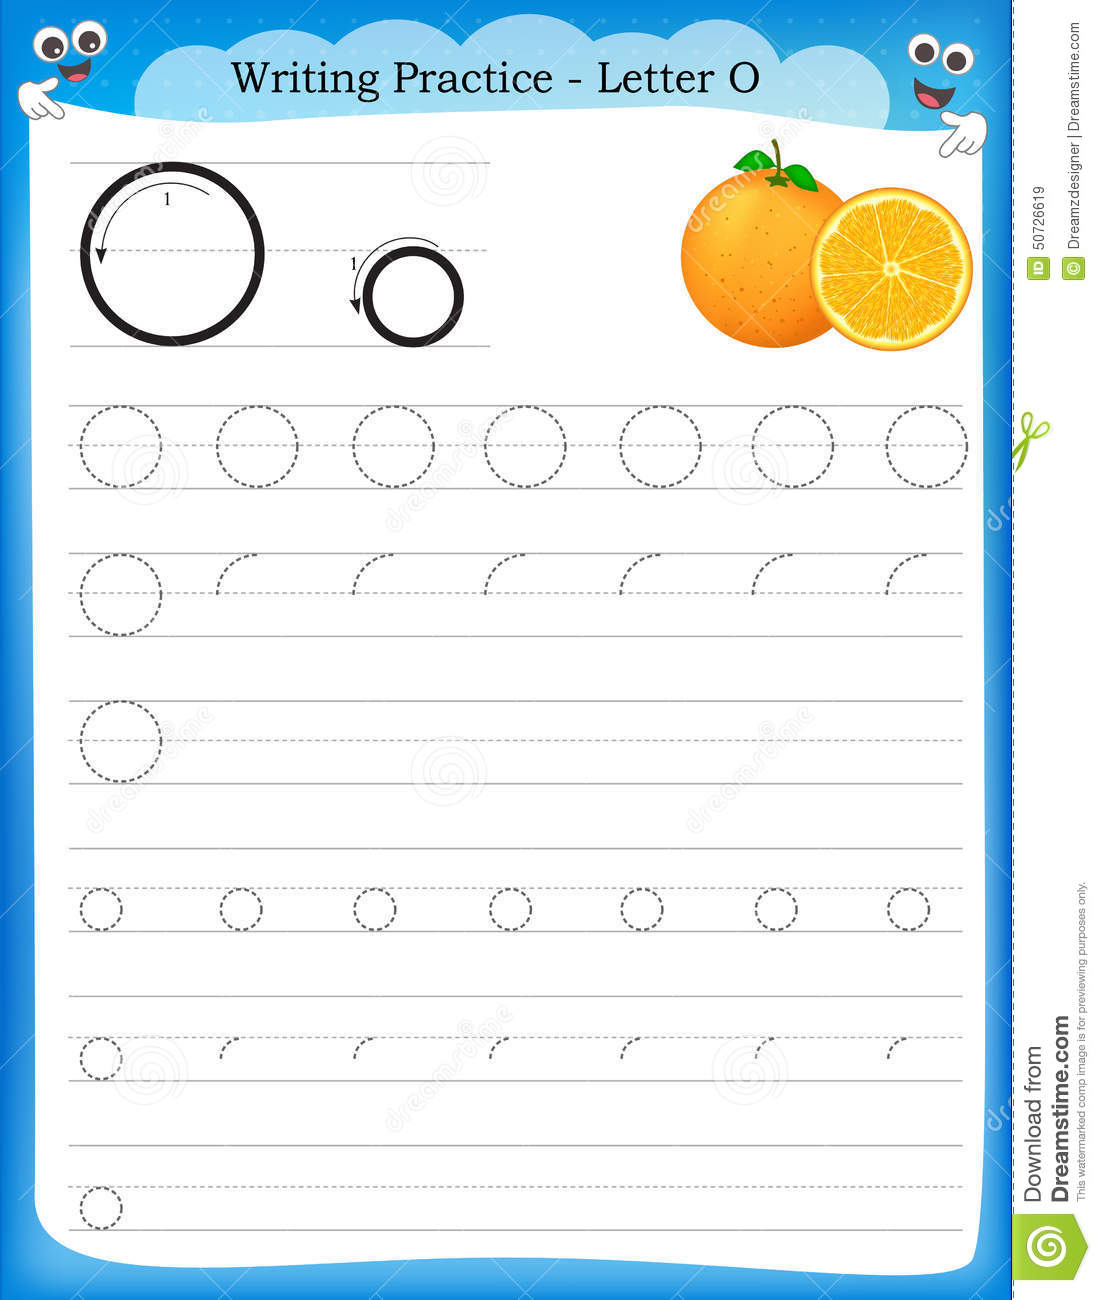 practice letter O printable worksheet with clip art for preschool ...